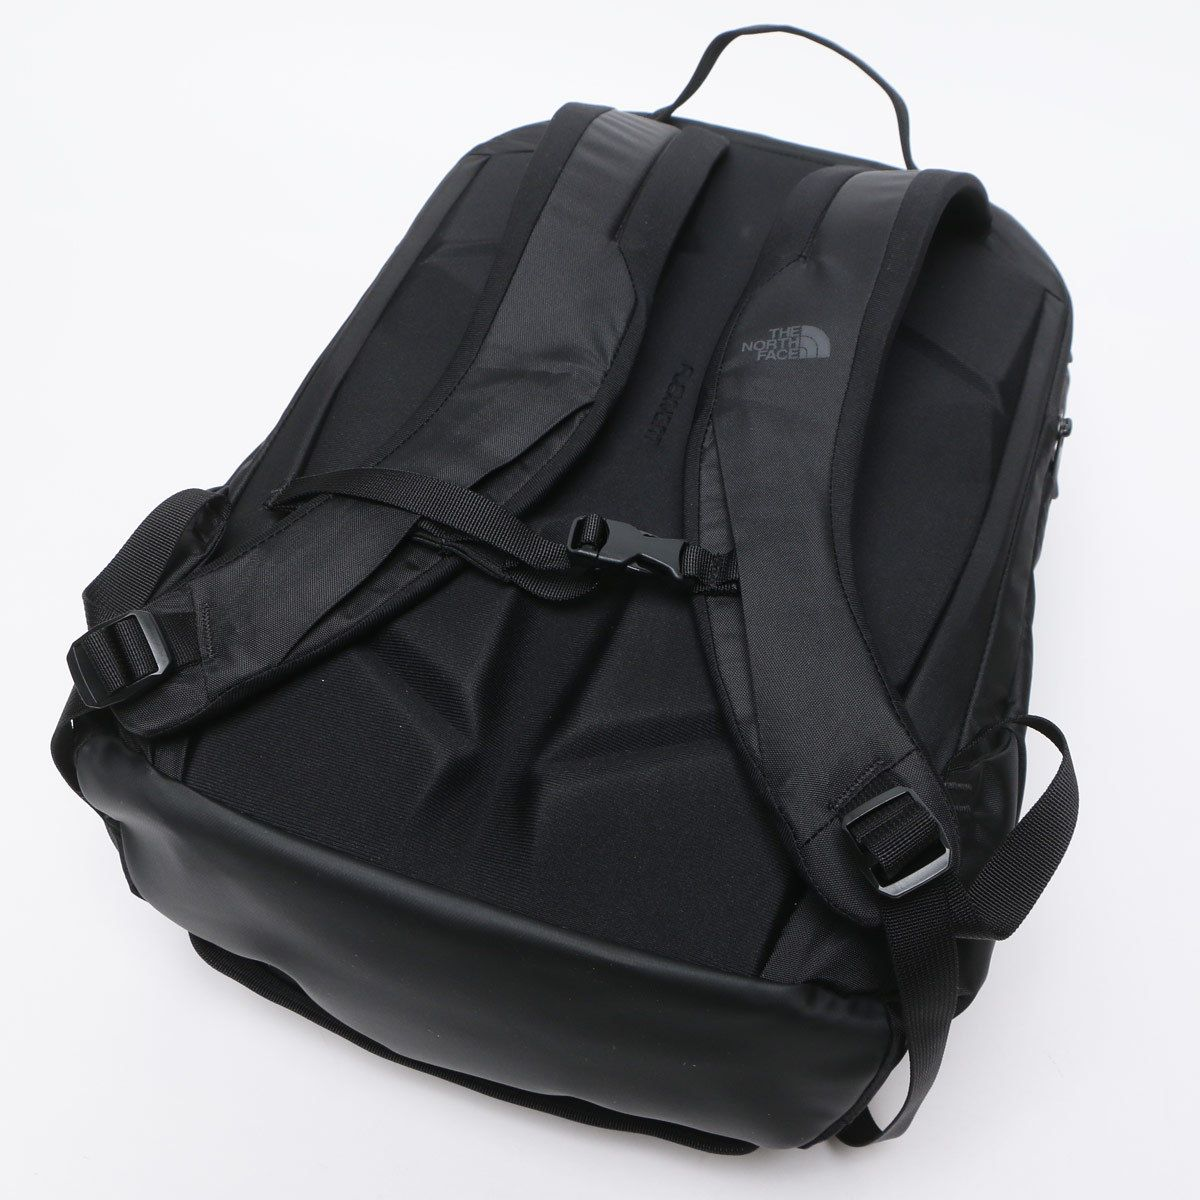 THE NORTH FACE (ザ ノースフェイス) FLEXVENT ロゴ PC タブレット対応 バックパック KABAN BACKPACK